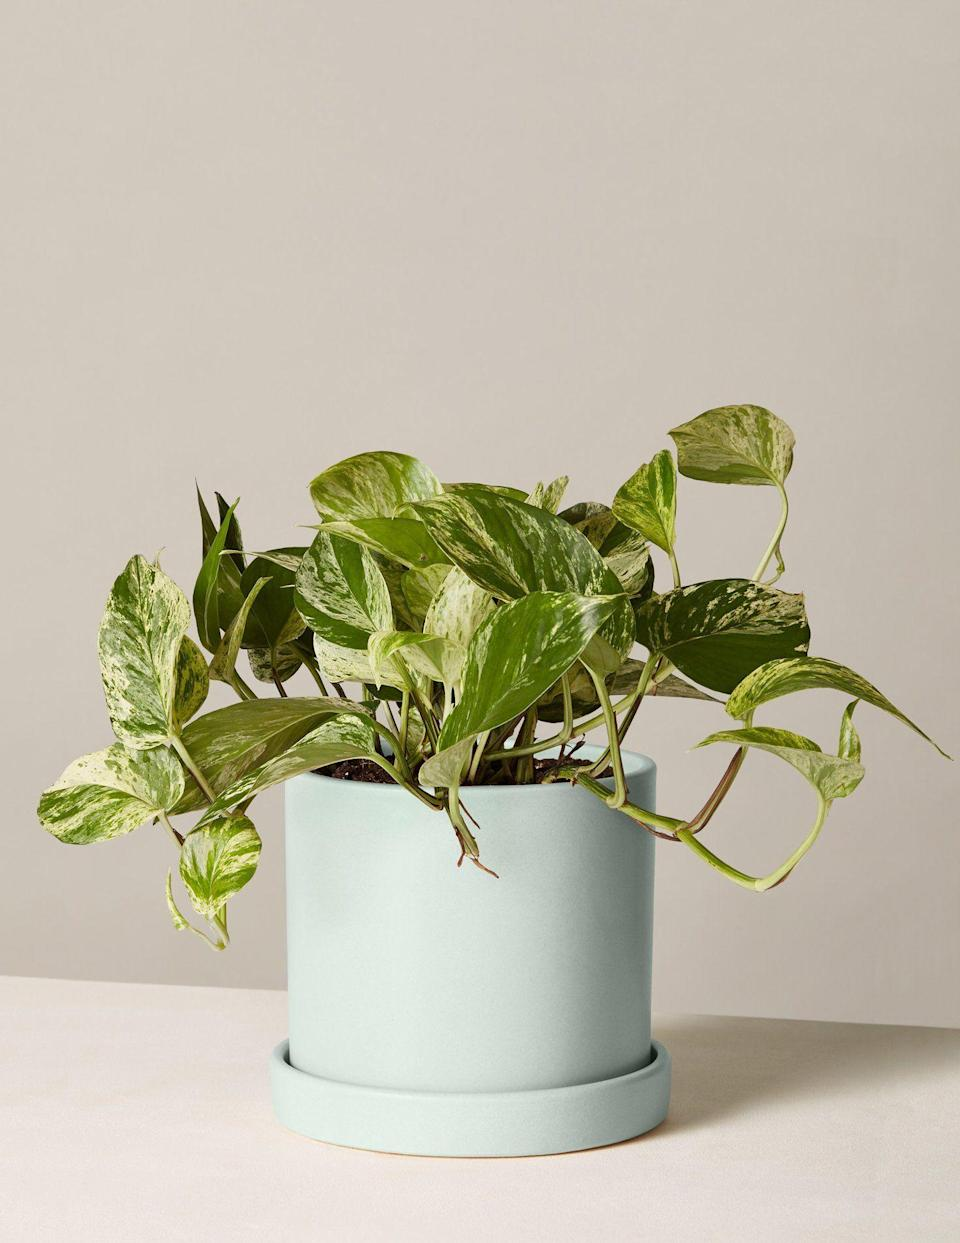 "<p>thesill.com</p><p><a href=""https://go.redirectingat.com?id=74968X1596630&url=https%3A%2F%2Fwww.thesill.com%2Fproducts%2Fpothos-marble%3Fvariant%3D32566613475433&sref=https%3A%2F%2Fwww.elledecor.com%2Fshopping%2Fg36322862%2Fbest-bathroom-plants%2F"" rel=""nofollow noopener"" target=""_blank"" data-ylk=""slk:Shop Now"" class=""link rapid-noclick-resp"">Shop Now</a></p><p>There's a reason why pothos are considered one of the most low-maintenance house plants around. Compatible with low-light environments, they're a sound choice for spaces that have minimal natural sunlight (Read: a windowless powder room). This species doesn't have a strict watering schedule—a little H20 every one to two weeks is sufficient—so it can thrive well the extra moisture. And thanks to its cascading, vinelike branches, a potted pothos would look dashing on a bathroom shelf.</p>"